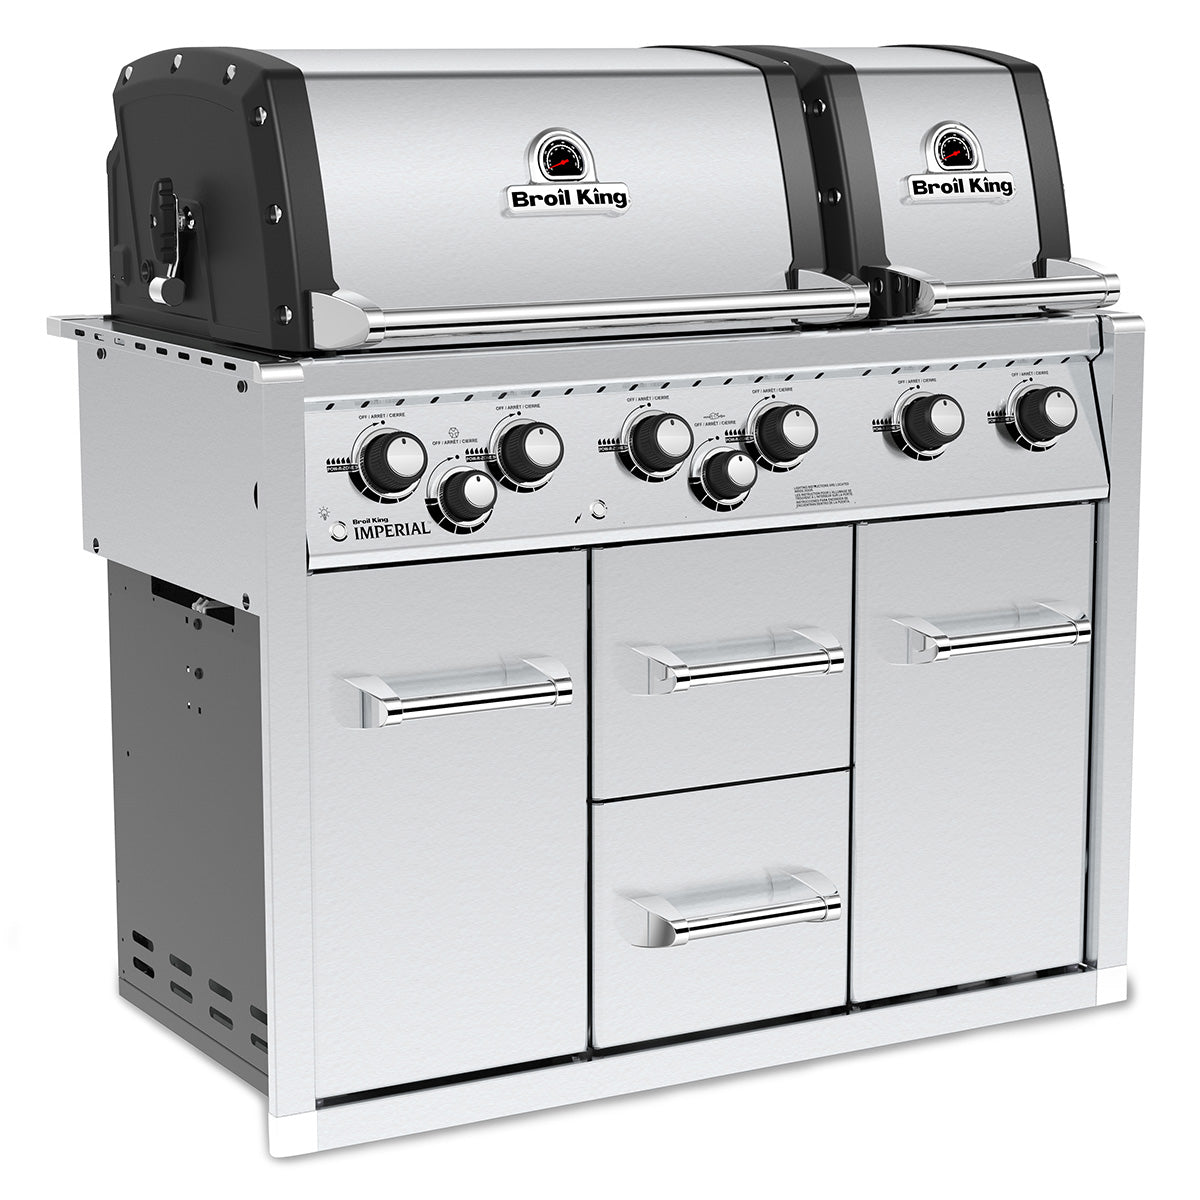 BROIL KING Gratar incorporabil Imperial XL